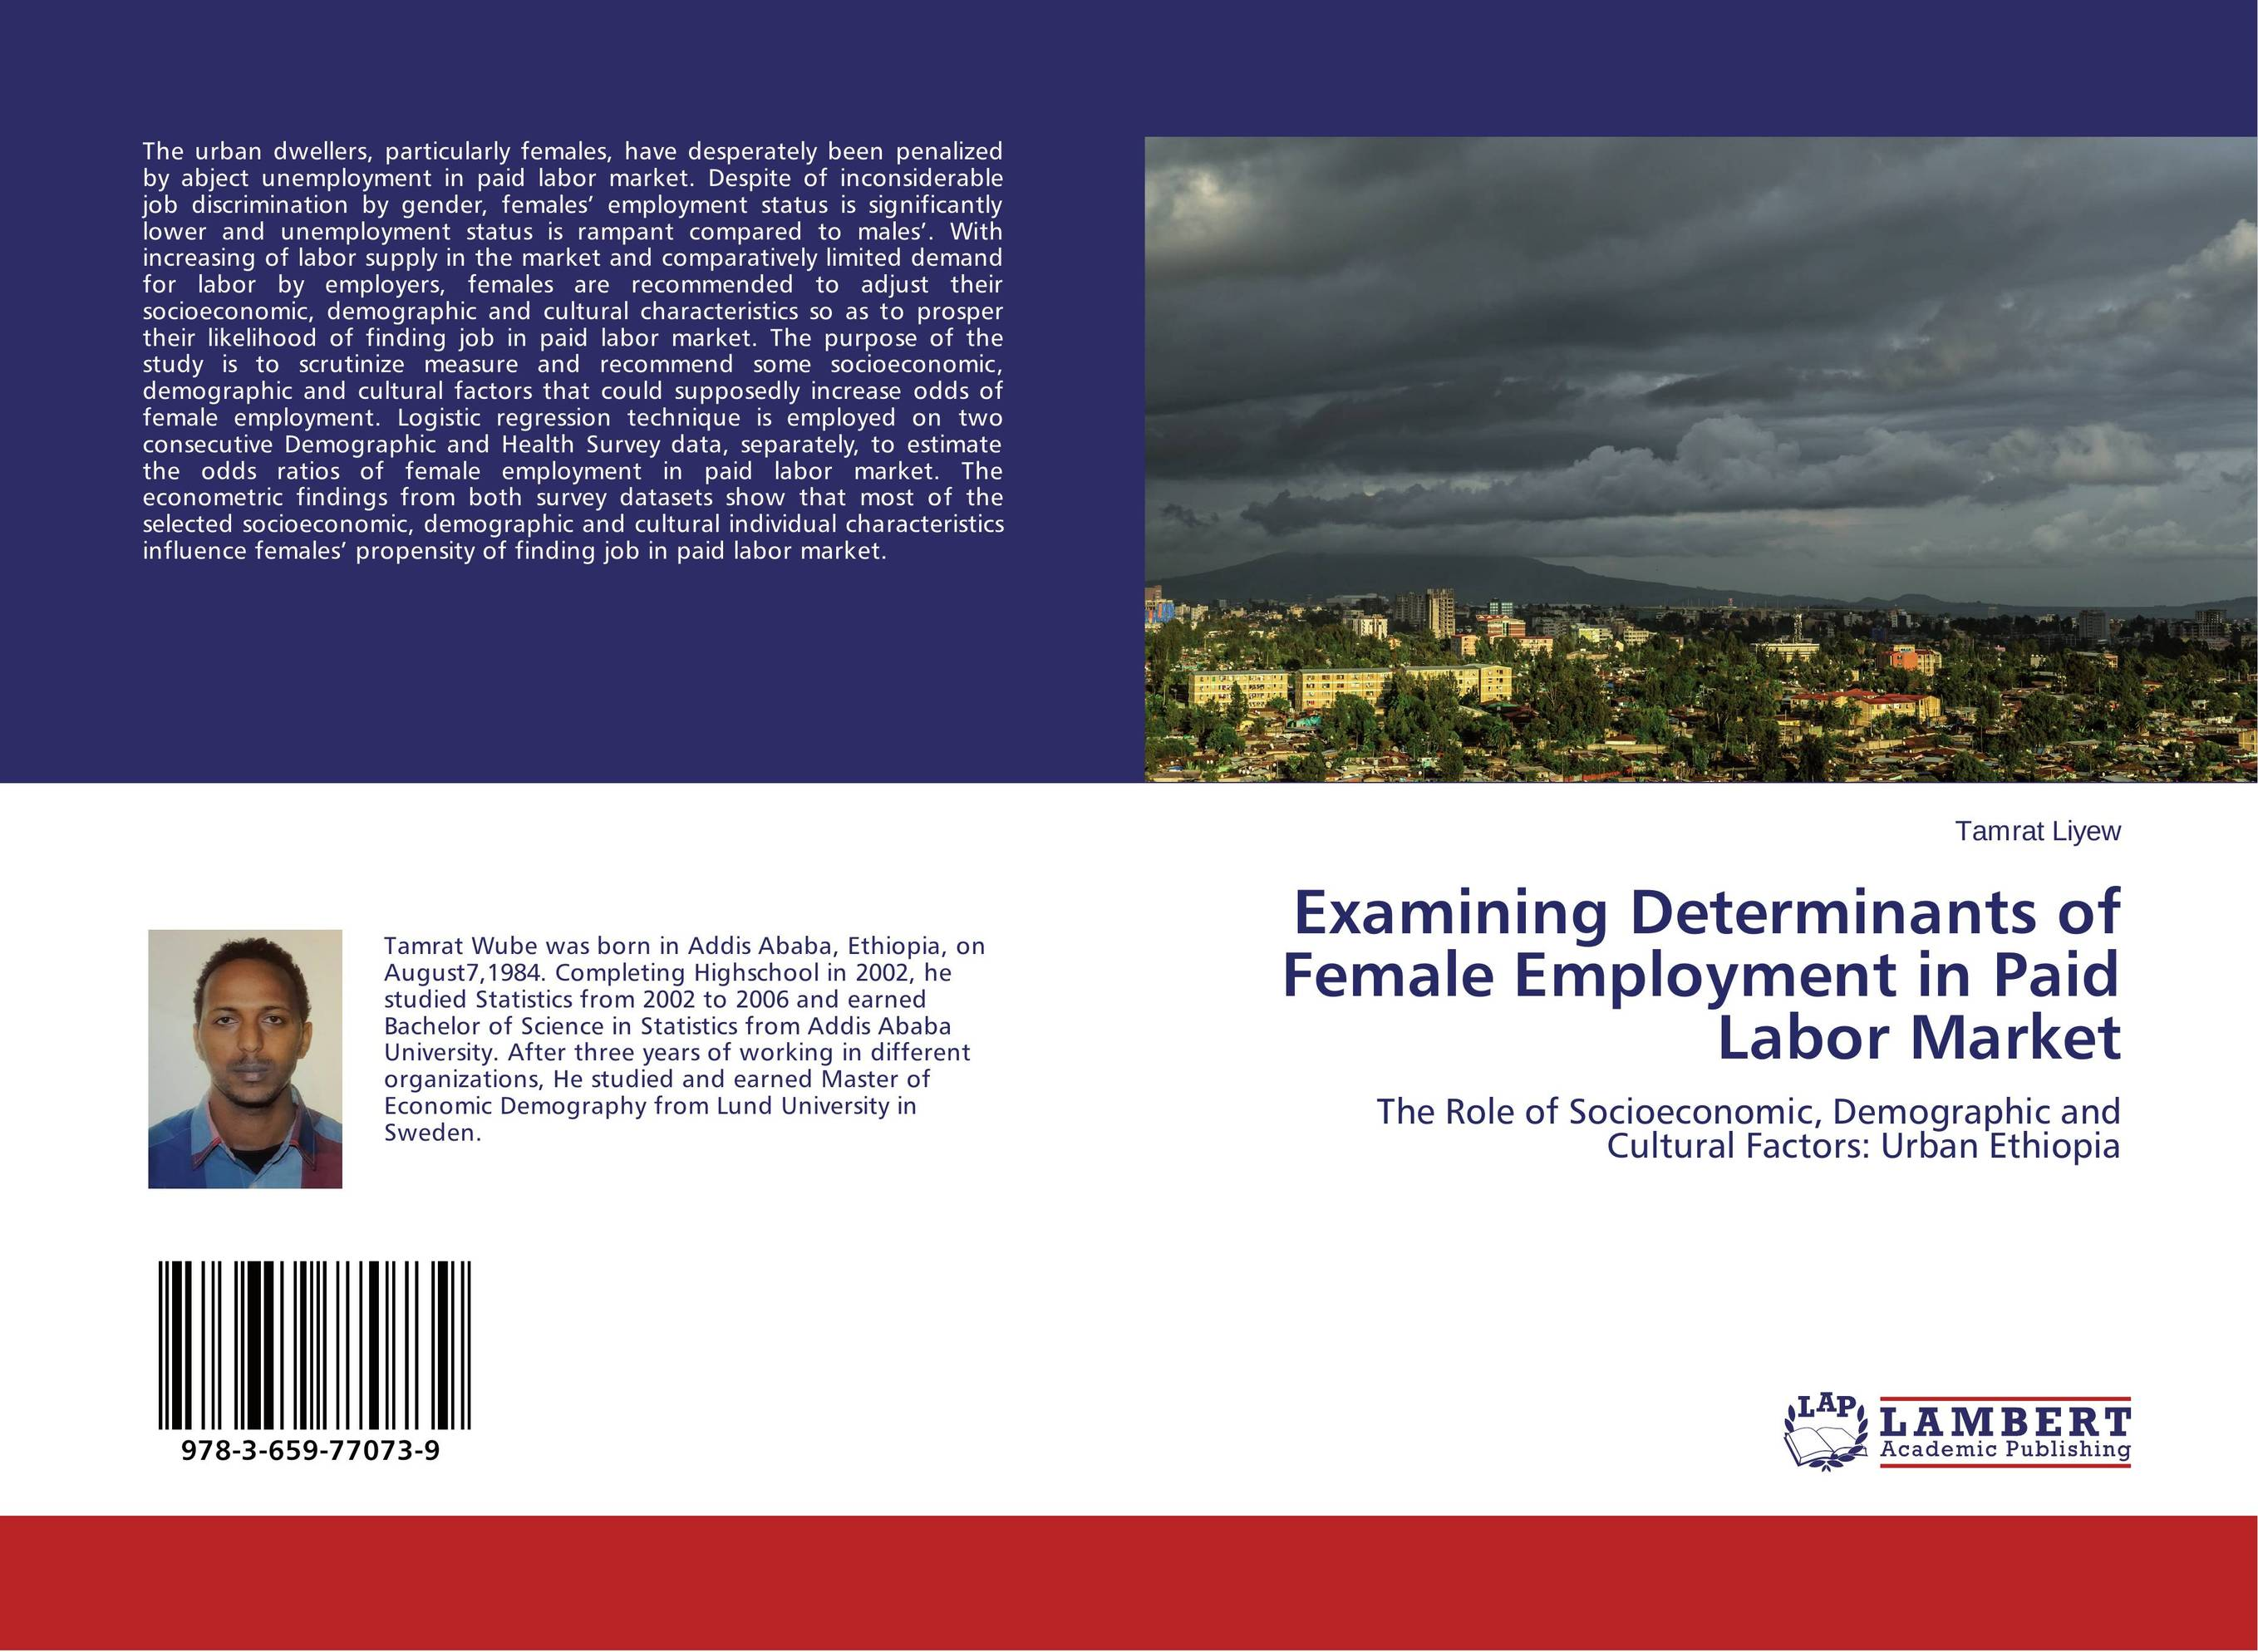 Examining Determinants of Female Employment in Paid Labor Market